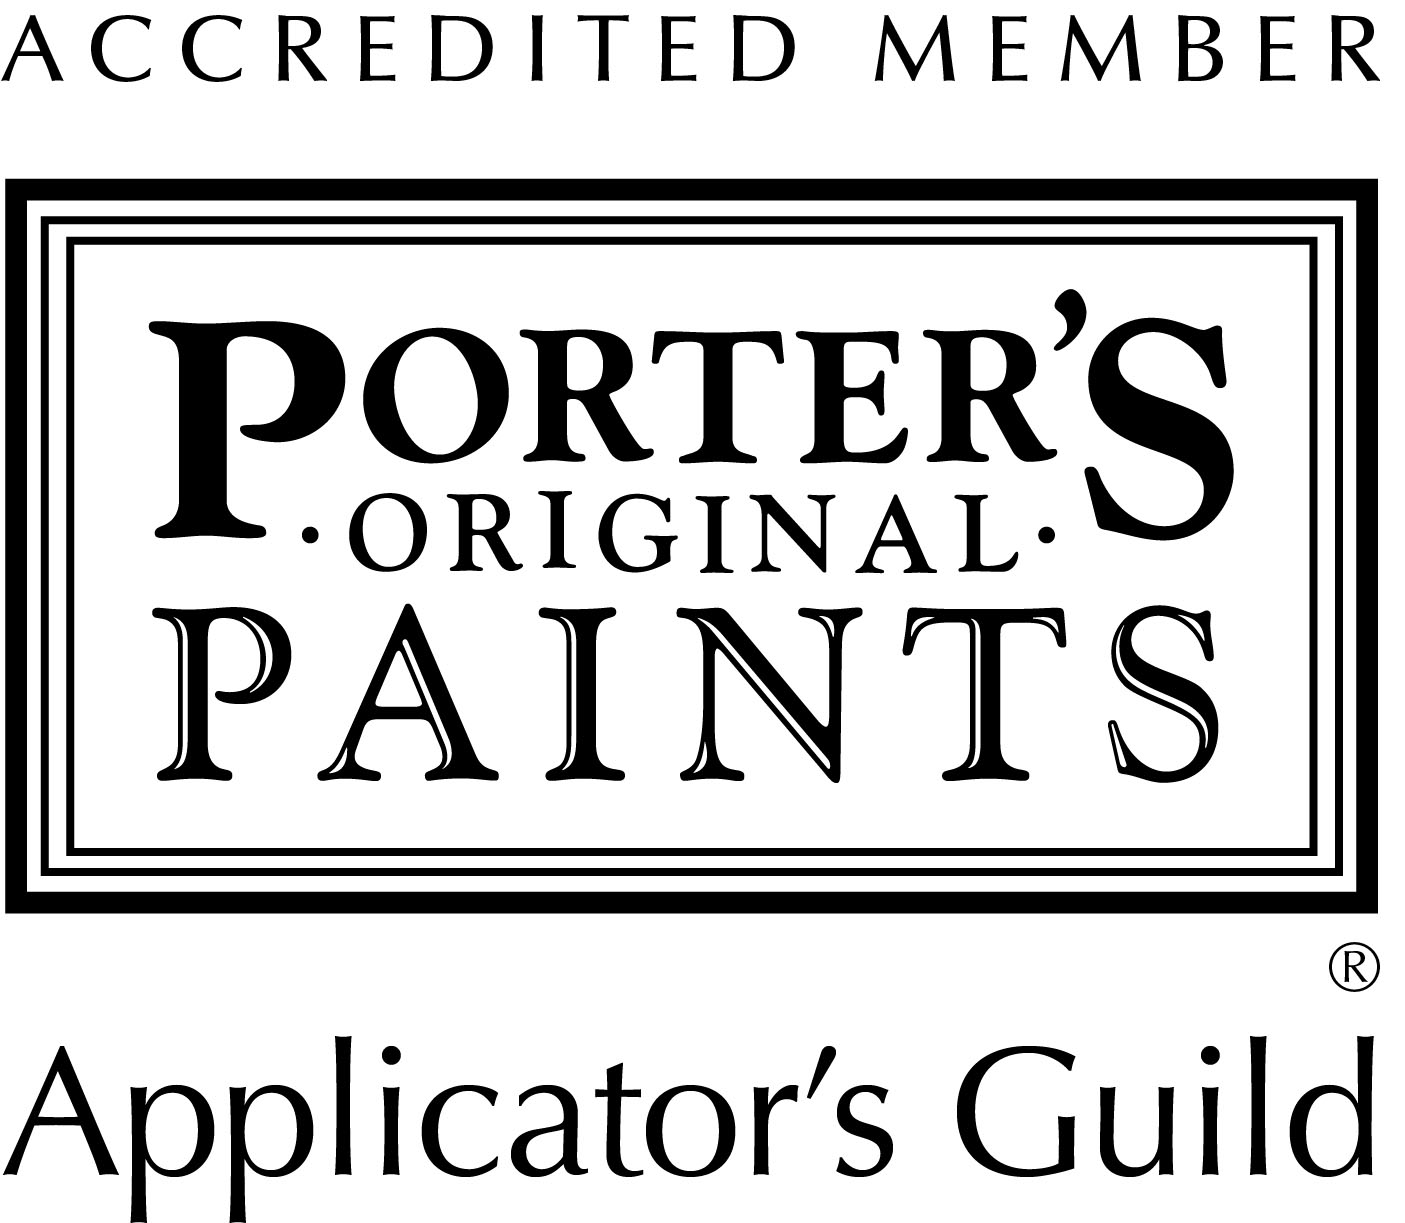 Porters Paints Accredited Member